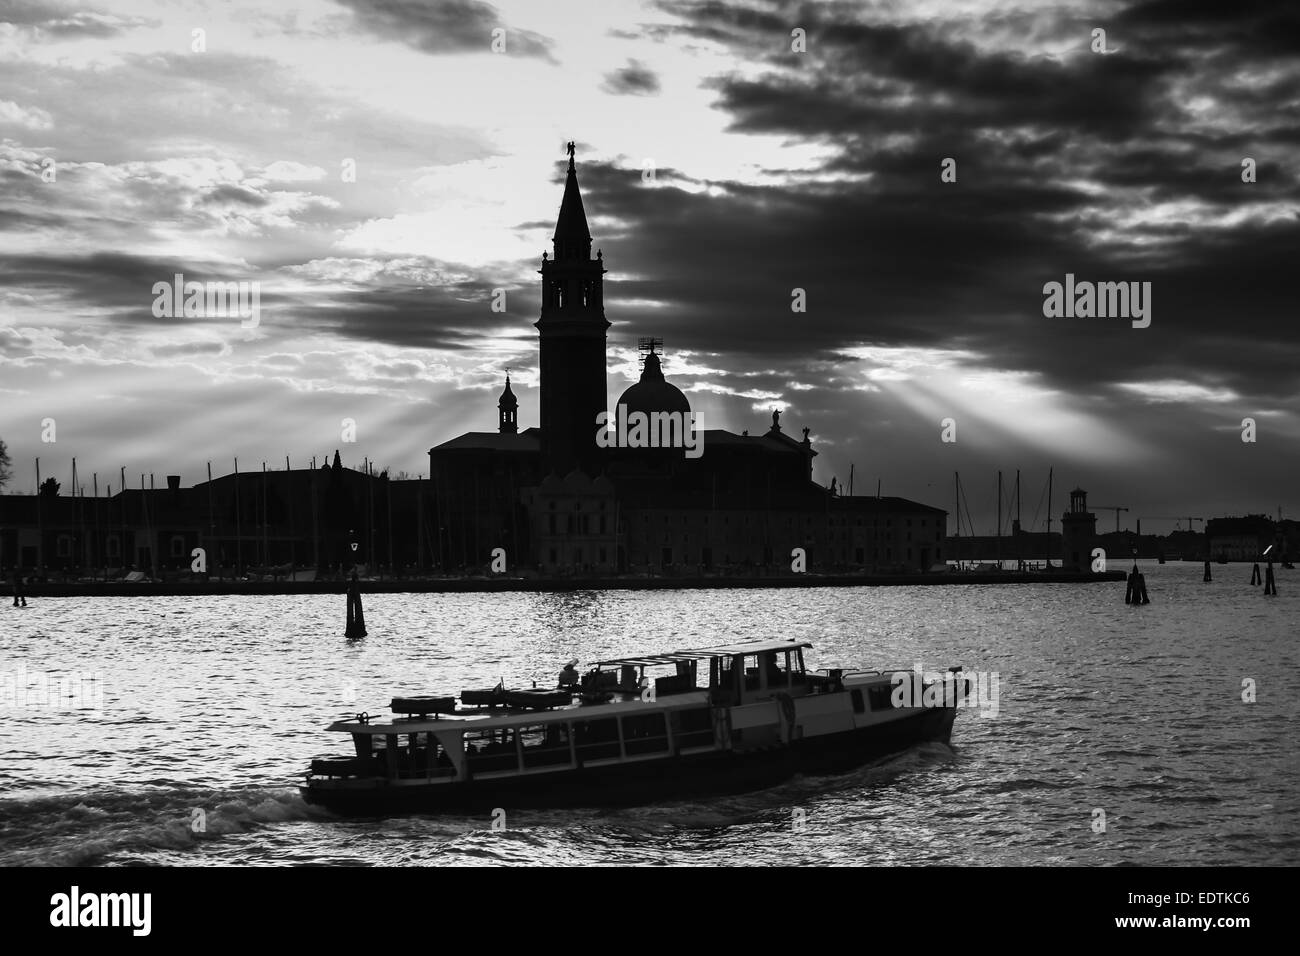 Church of San Giorgio Maggiore at sunset on the island of the San Giorgio Maggiore and a boat with tourists passing - Stock Image